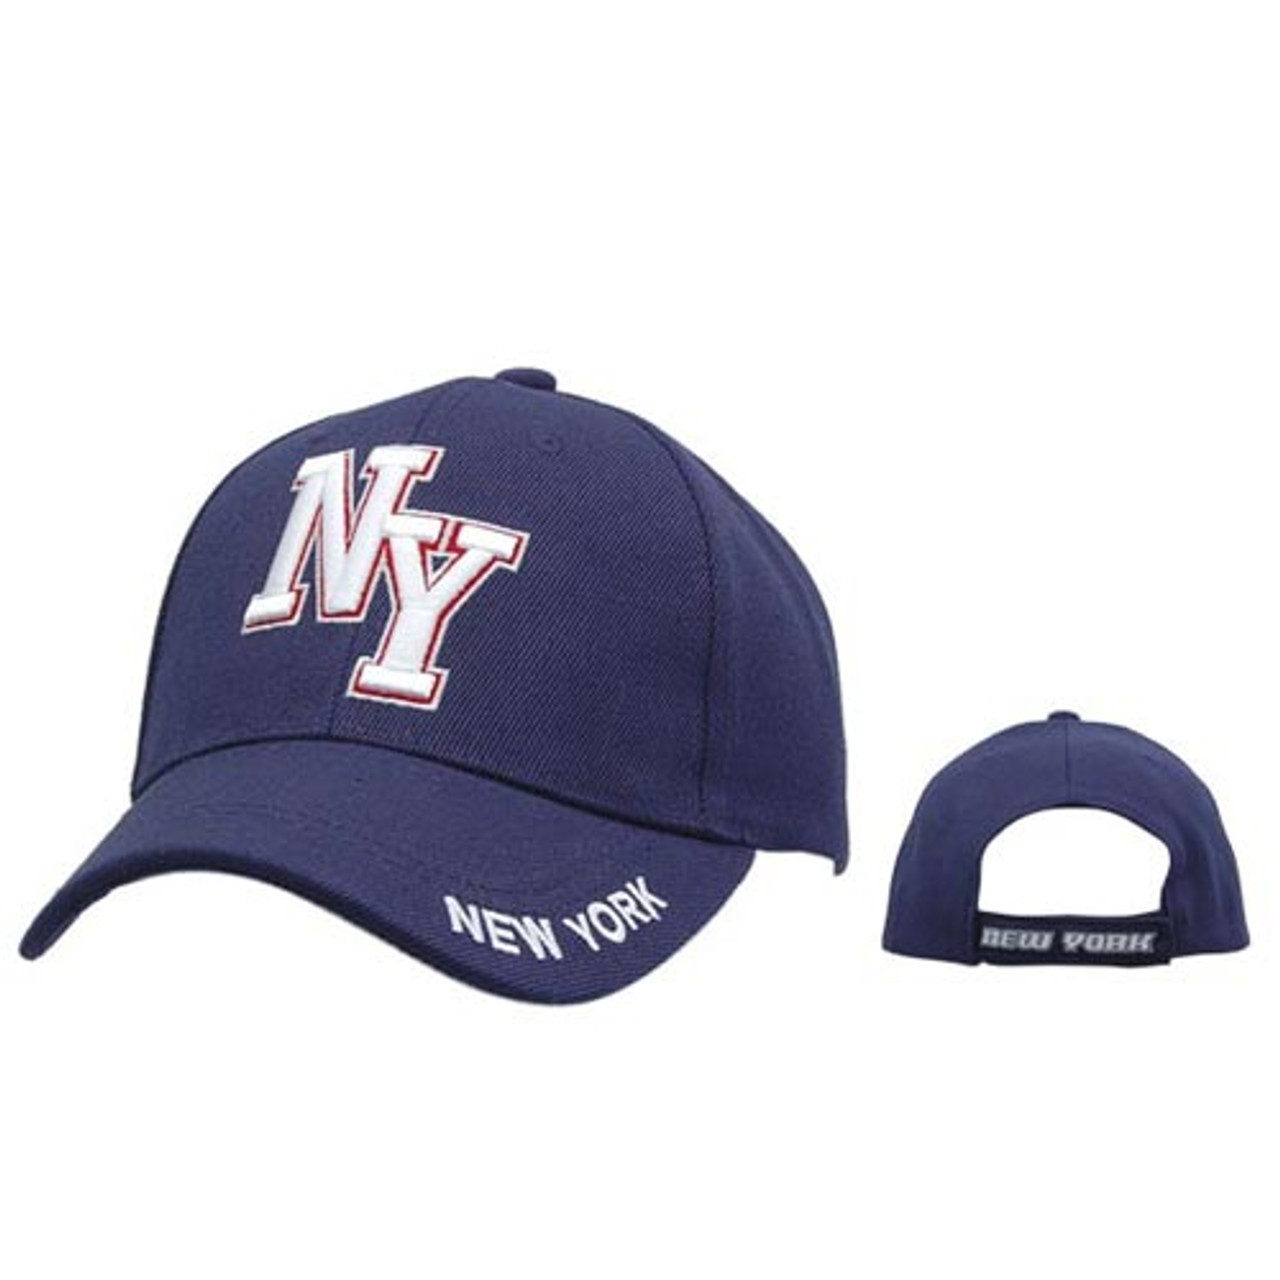 New York Baseball Caps C207